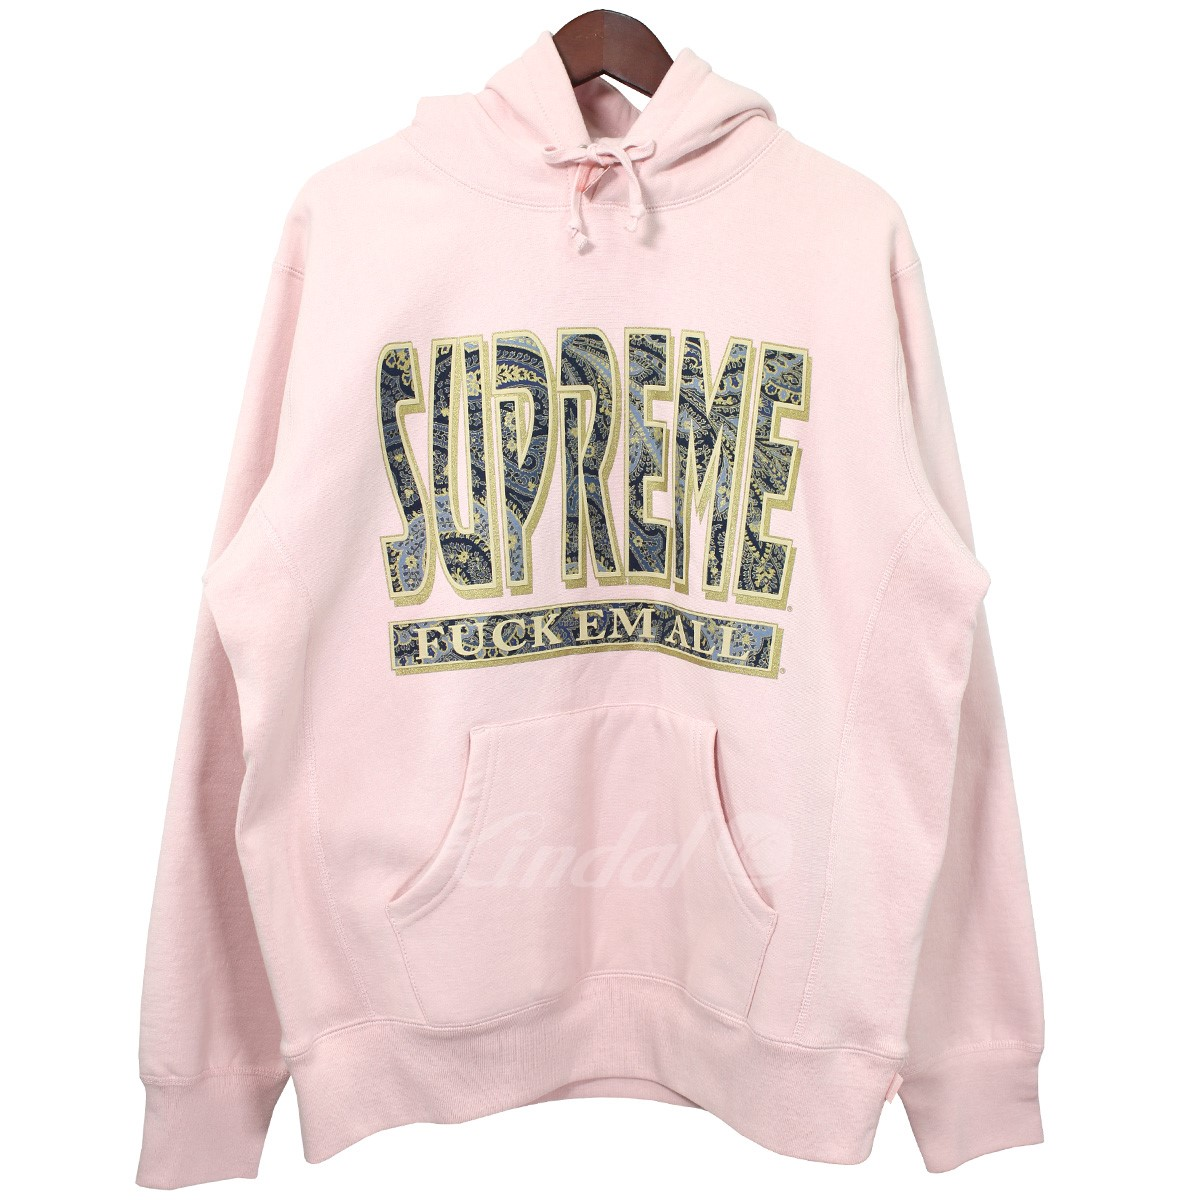 【中古】SUPREME 2017AW Paisley Fuck Em All Hooded Sweatshirt 【送料無料】 【002545】 【KIND1550】